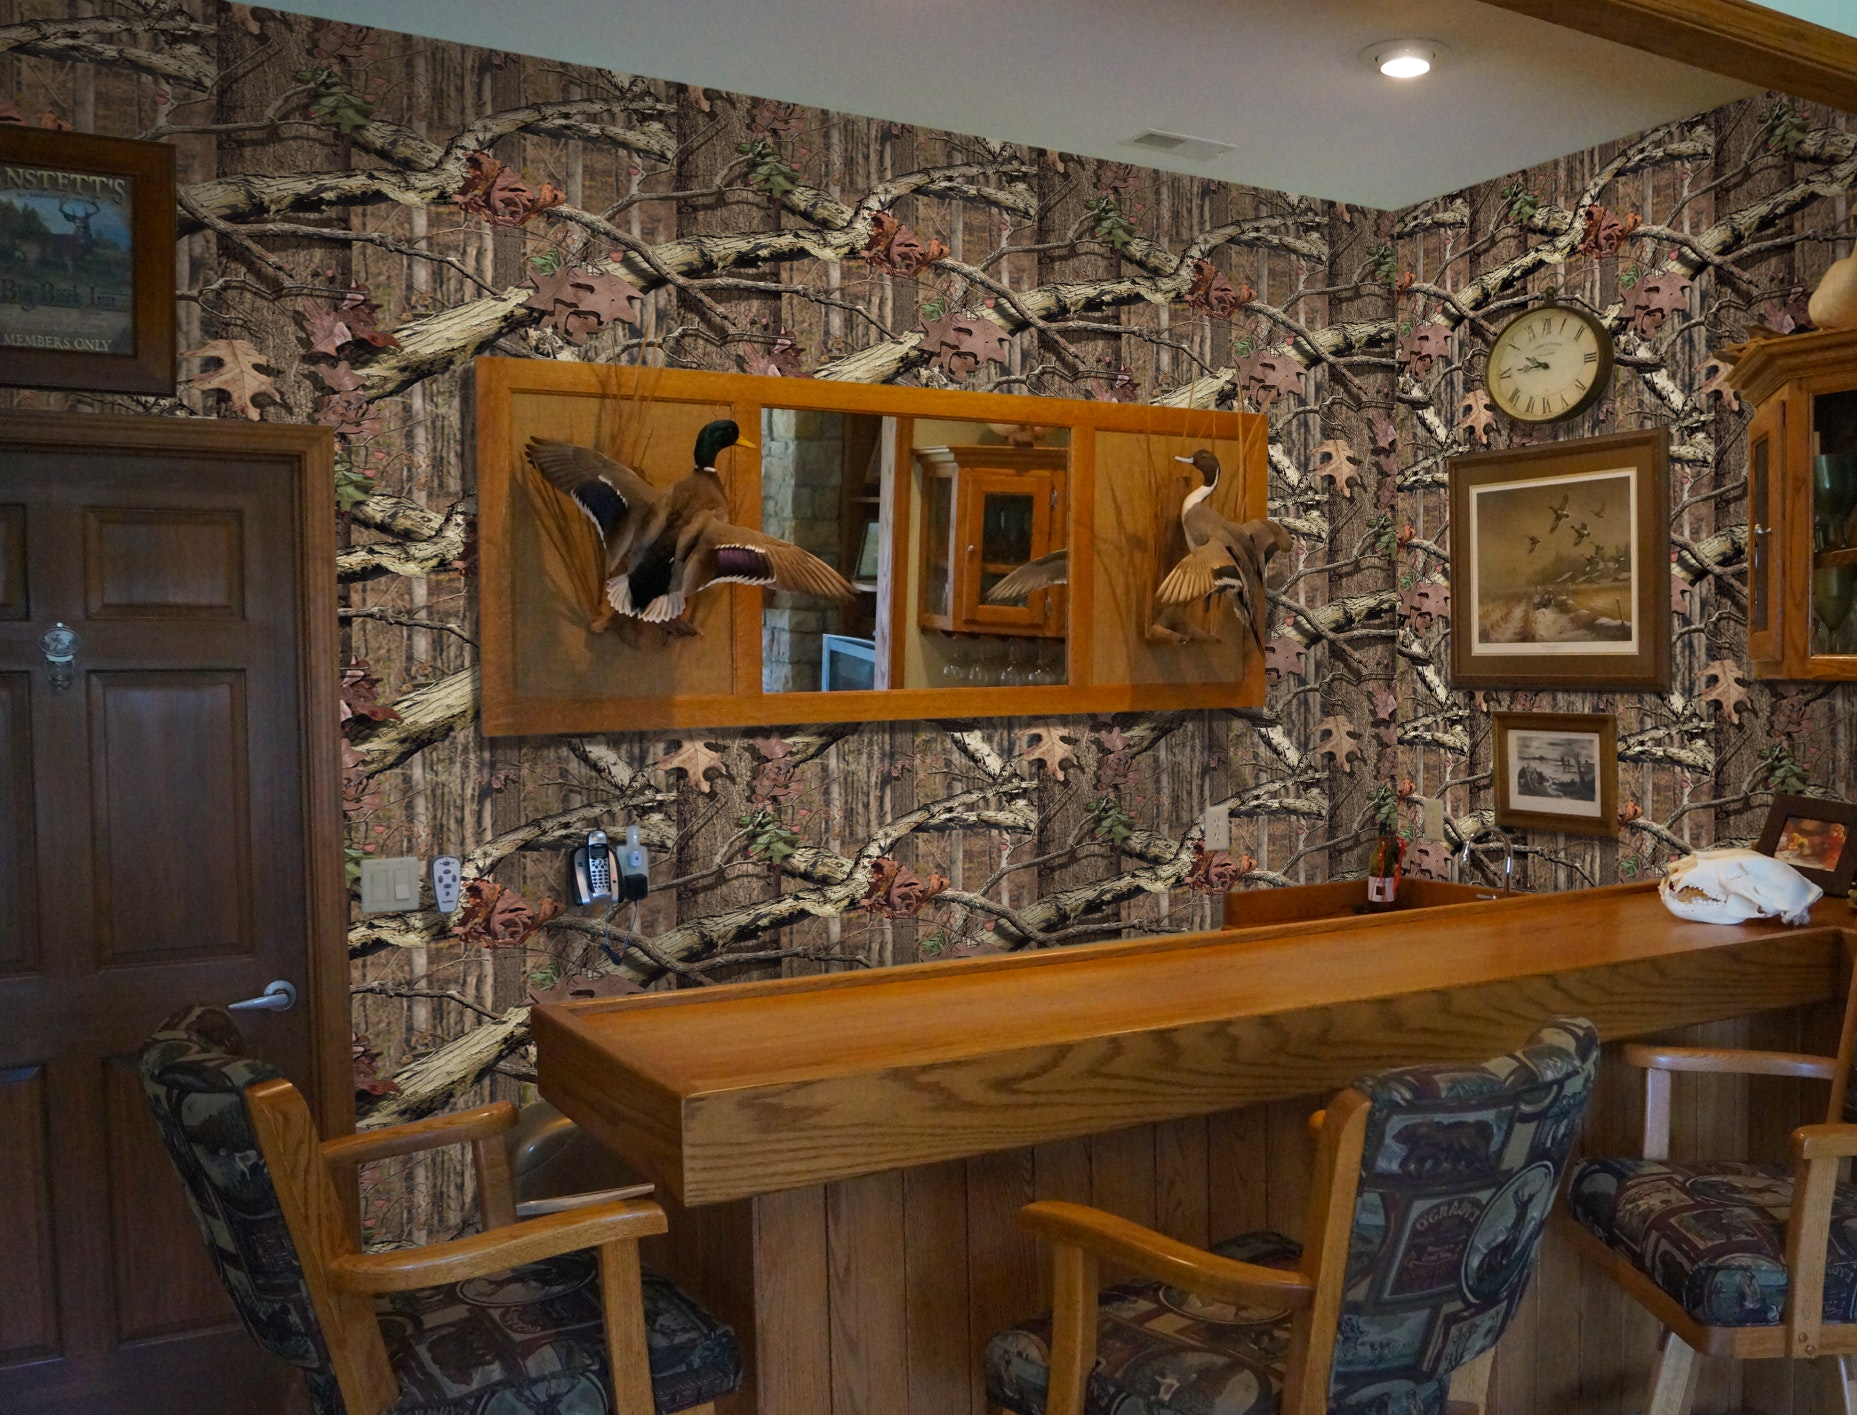 camo wallpaper, mossy oak wall coverings | mossy oak graphics